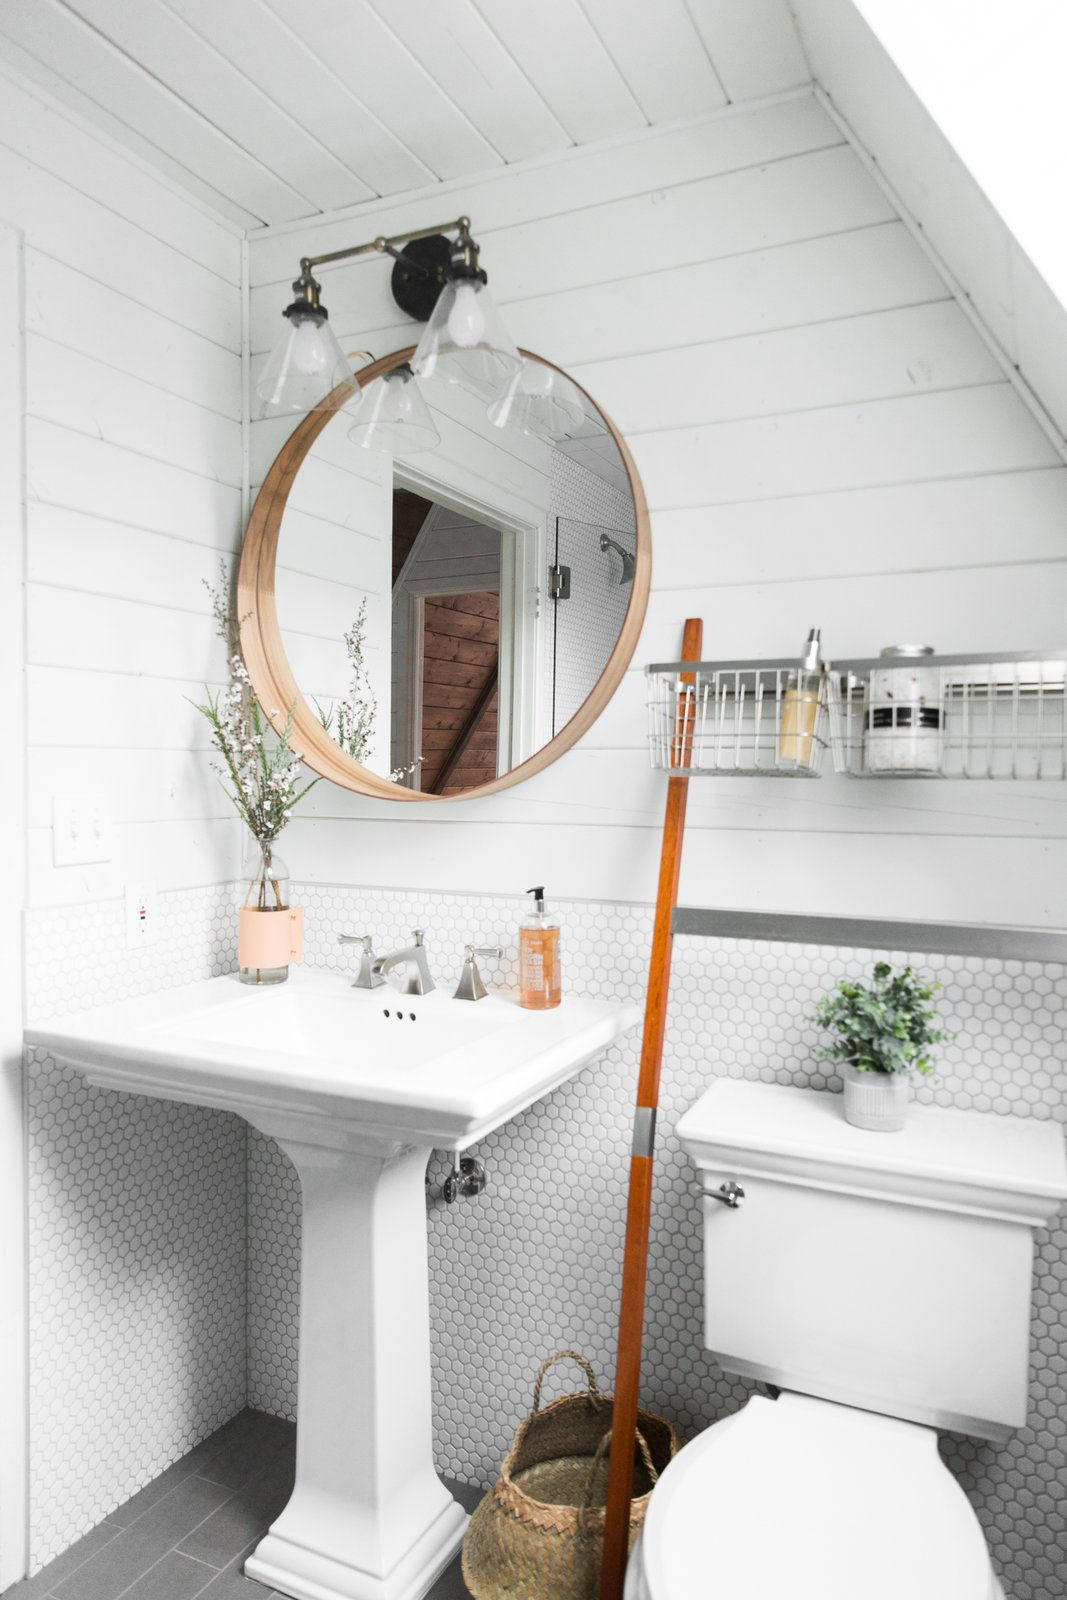 Bath Room Two Piece Toilet Wall Lighting And Pedestal Sink A Bathroom With